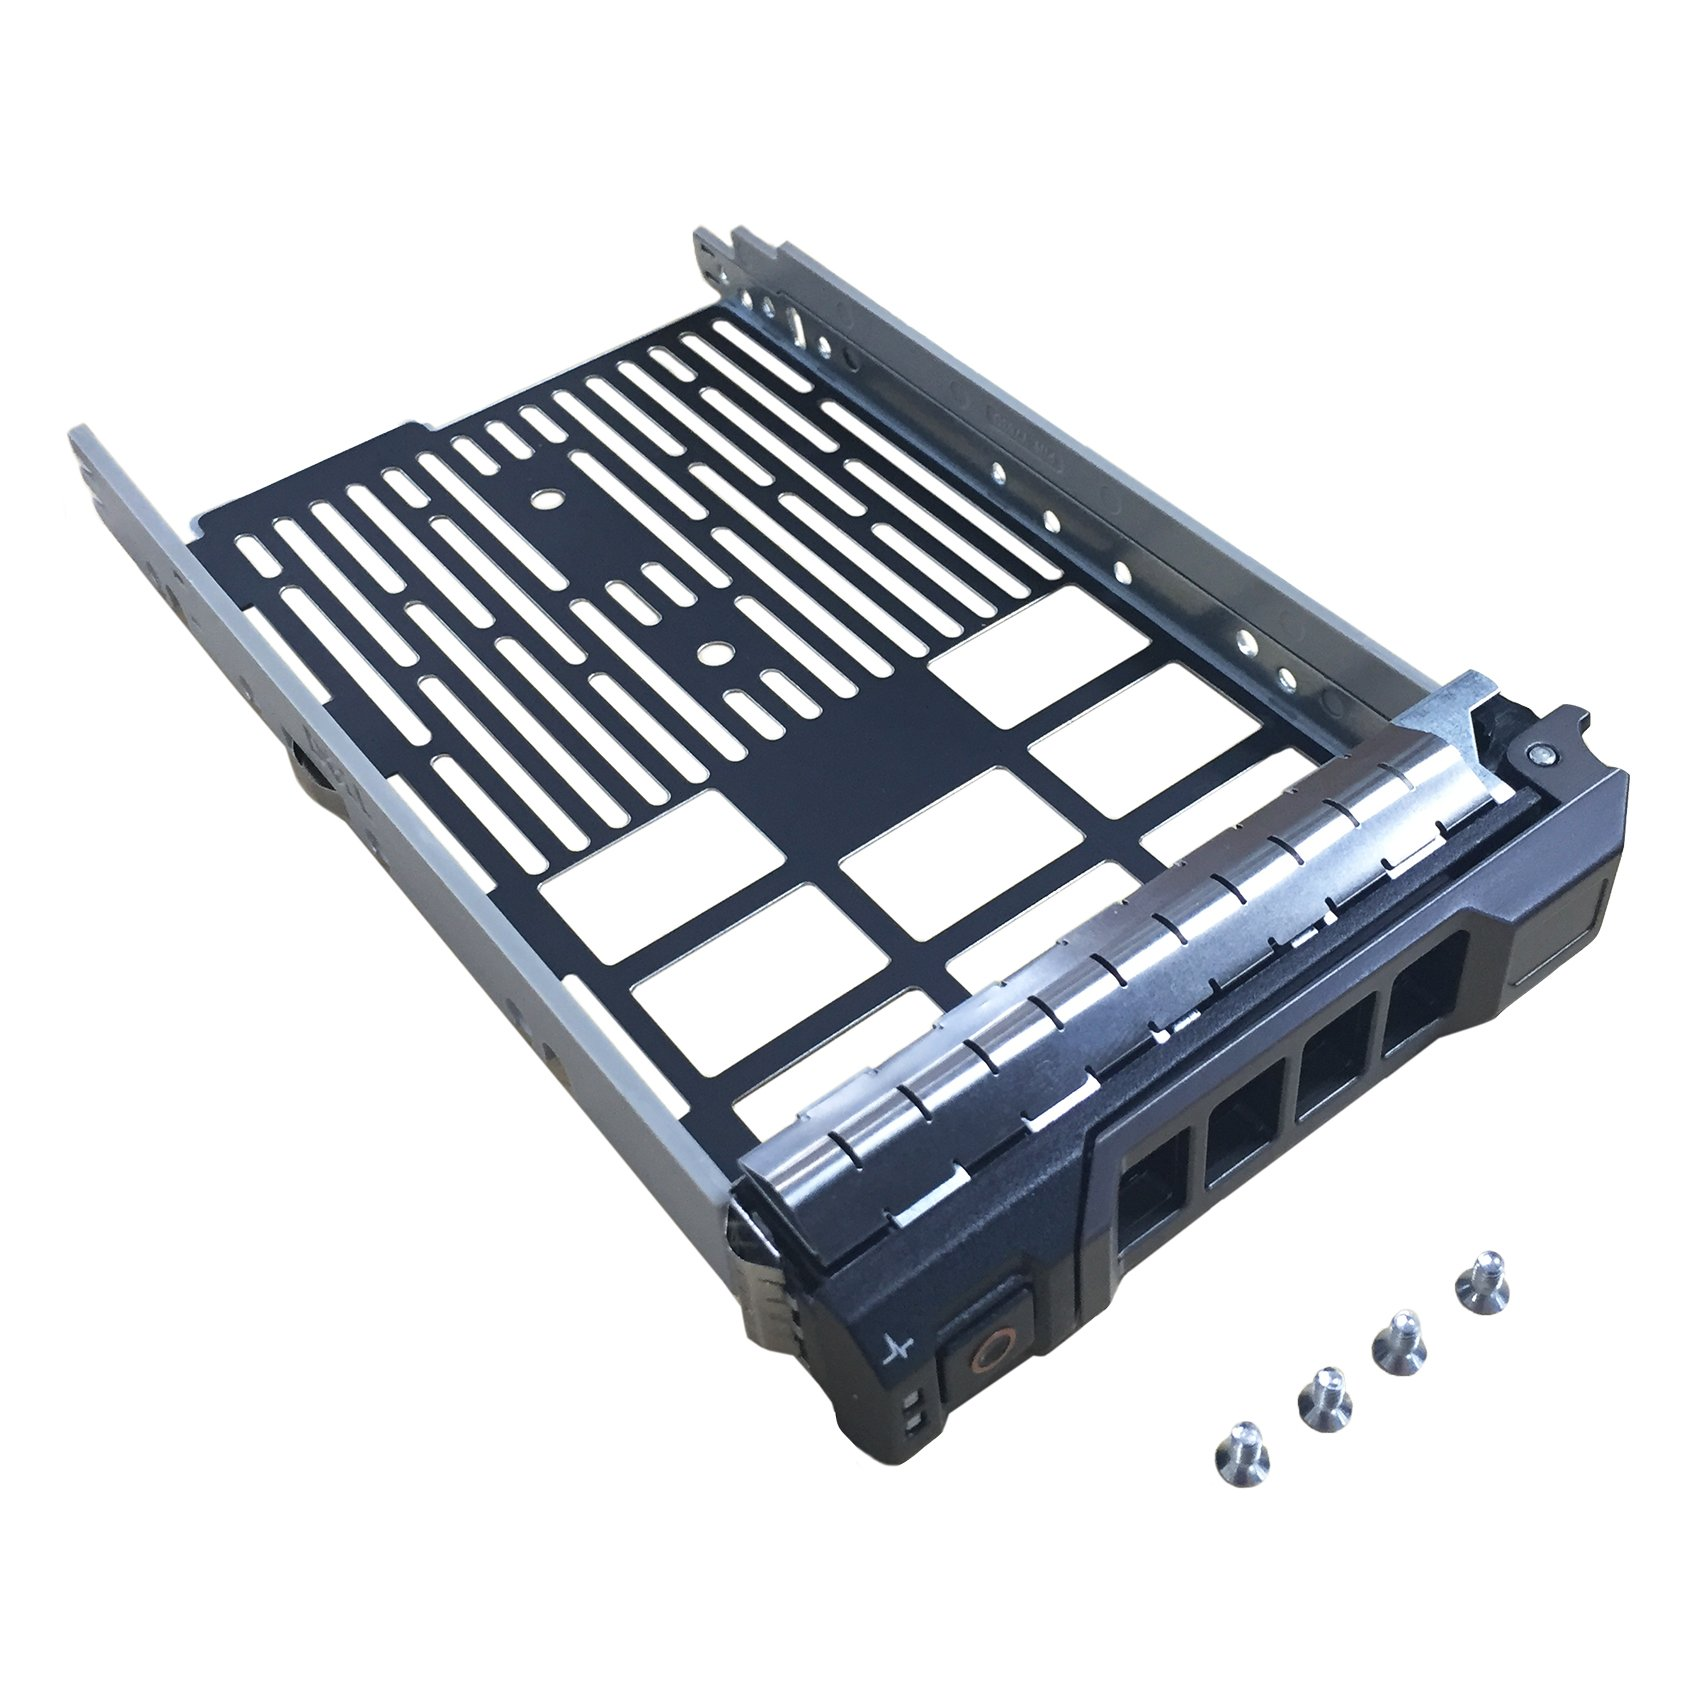 3.5'' HDD Drive Tray Caddy For Dell R530 R630 R730 R930 T430 T630 R730XD MD1400 MD3400 Series 0KG1CH KG1CH